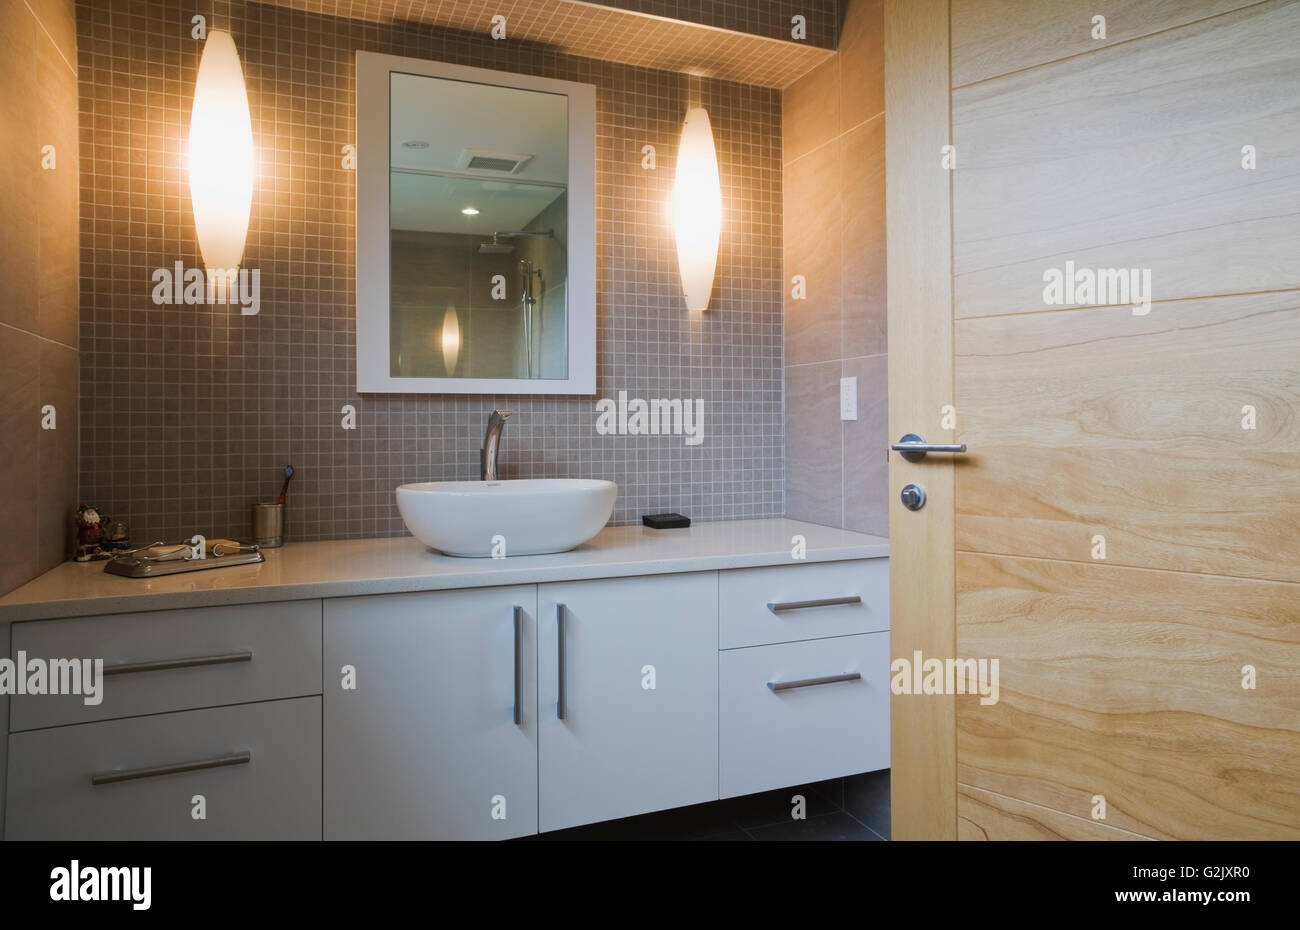 Illuminated White Round Porcelain Sink Lacquered Vanity Mirror In A Guest  Bathroom On Upstairs Floor Inside A Modern Cubist